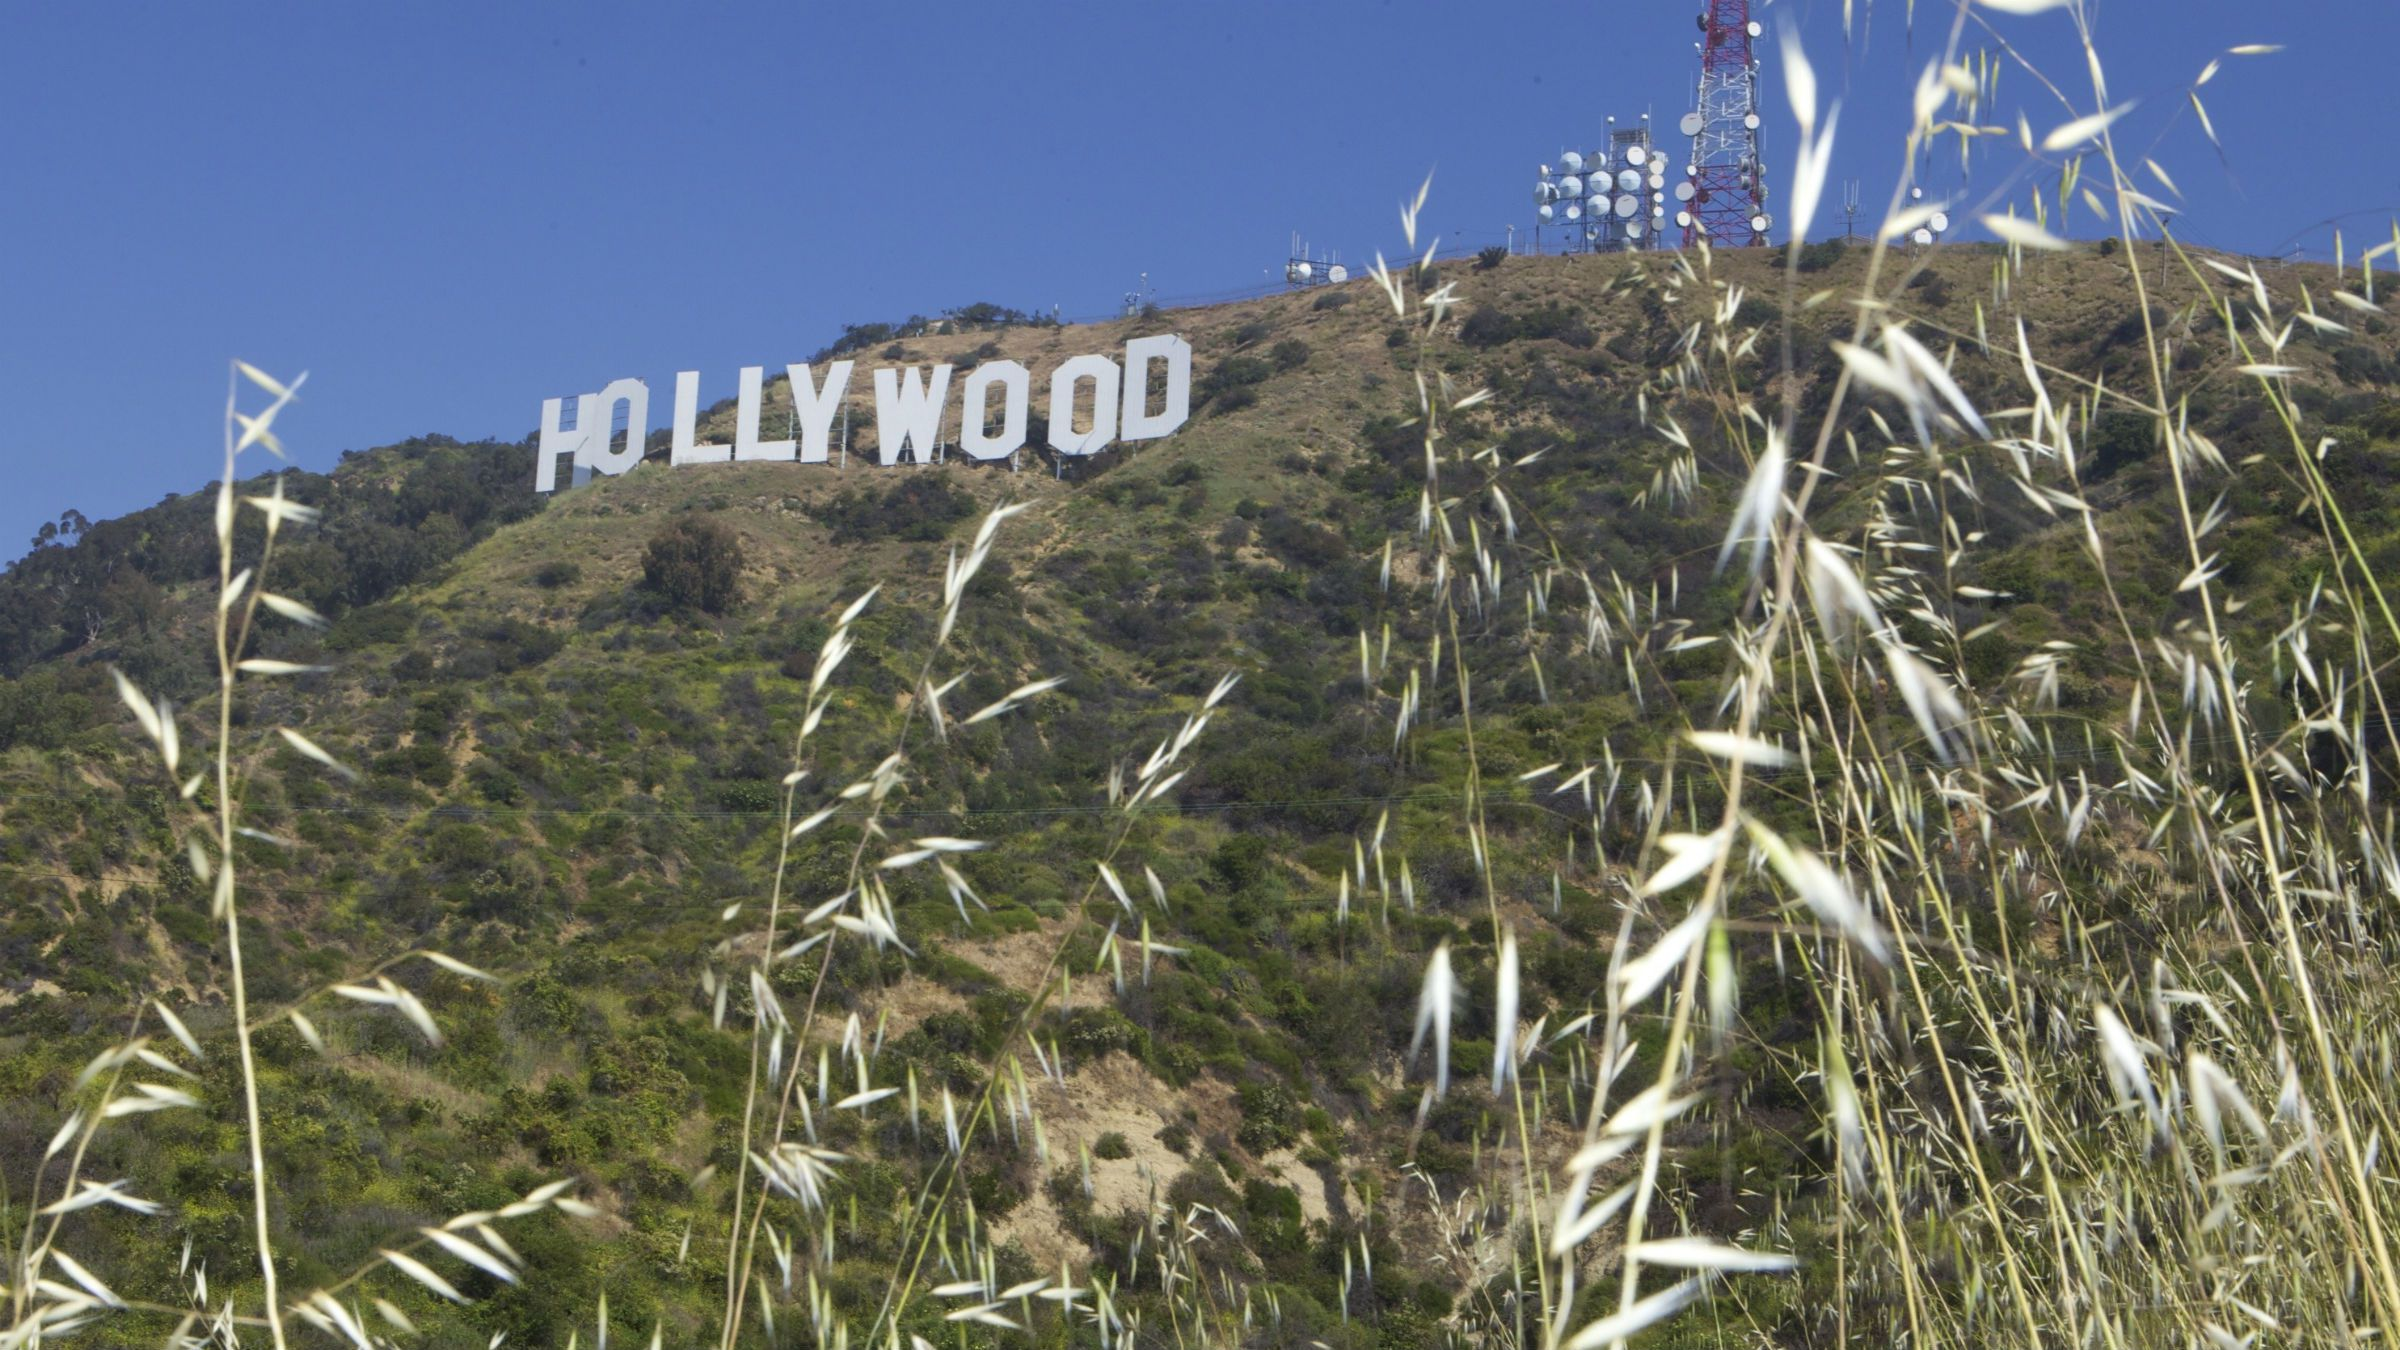 """The Hollywood sign is seen on Monday, April 26, 2010, in Los Angeles. Officials with the Trust for Public Land announced the success of the """"Save the Cahuenga Peak"""" campaign, after raising $12.5 million to acquire a 138-acre parcel of land just west of the landmark Hollywood sign. A final $900,000 donation by Playboy founder Hugh Hefner completed the $12.5 million fundraising drive to protect the 138 acres behind the famous sign."""